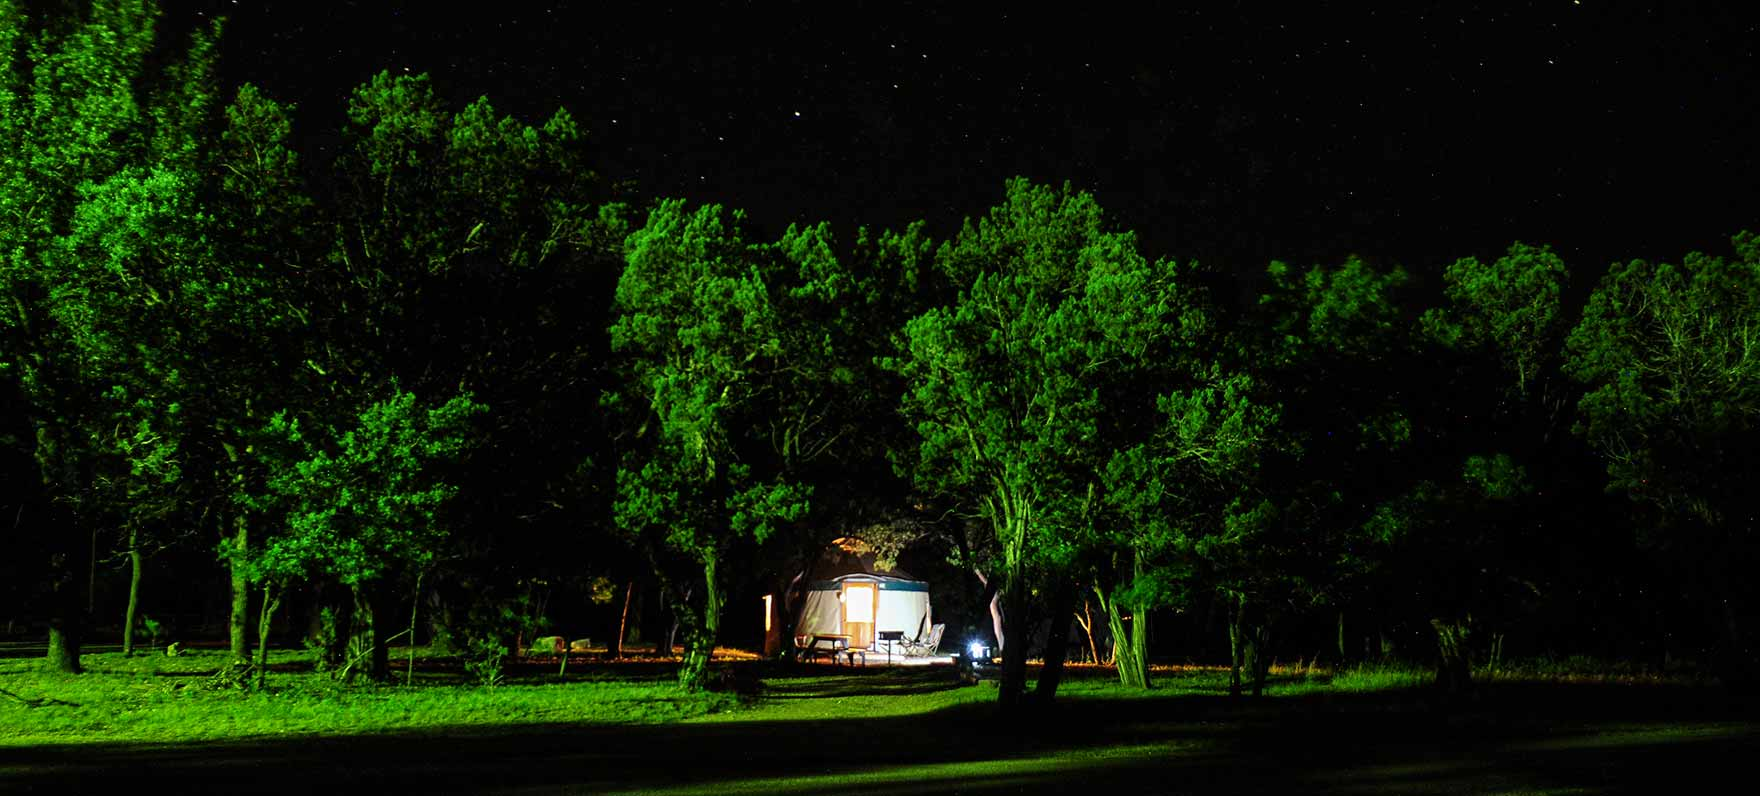 The yurt at night. Thick canopies of native pecans, red oaks and willows cover paths where white-tailed deer roam free.